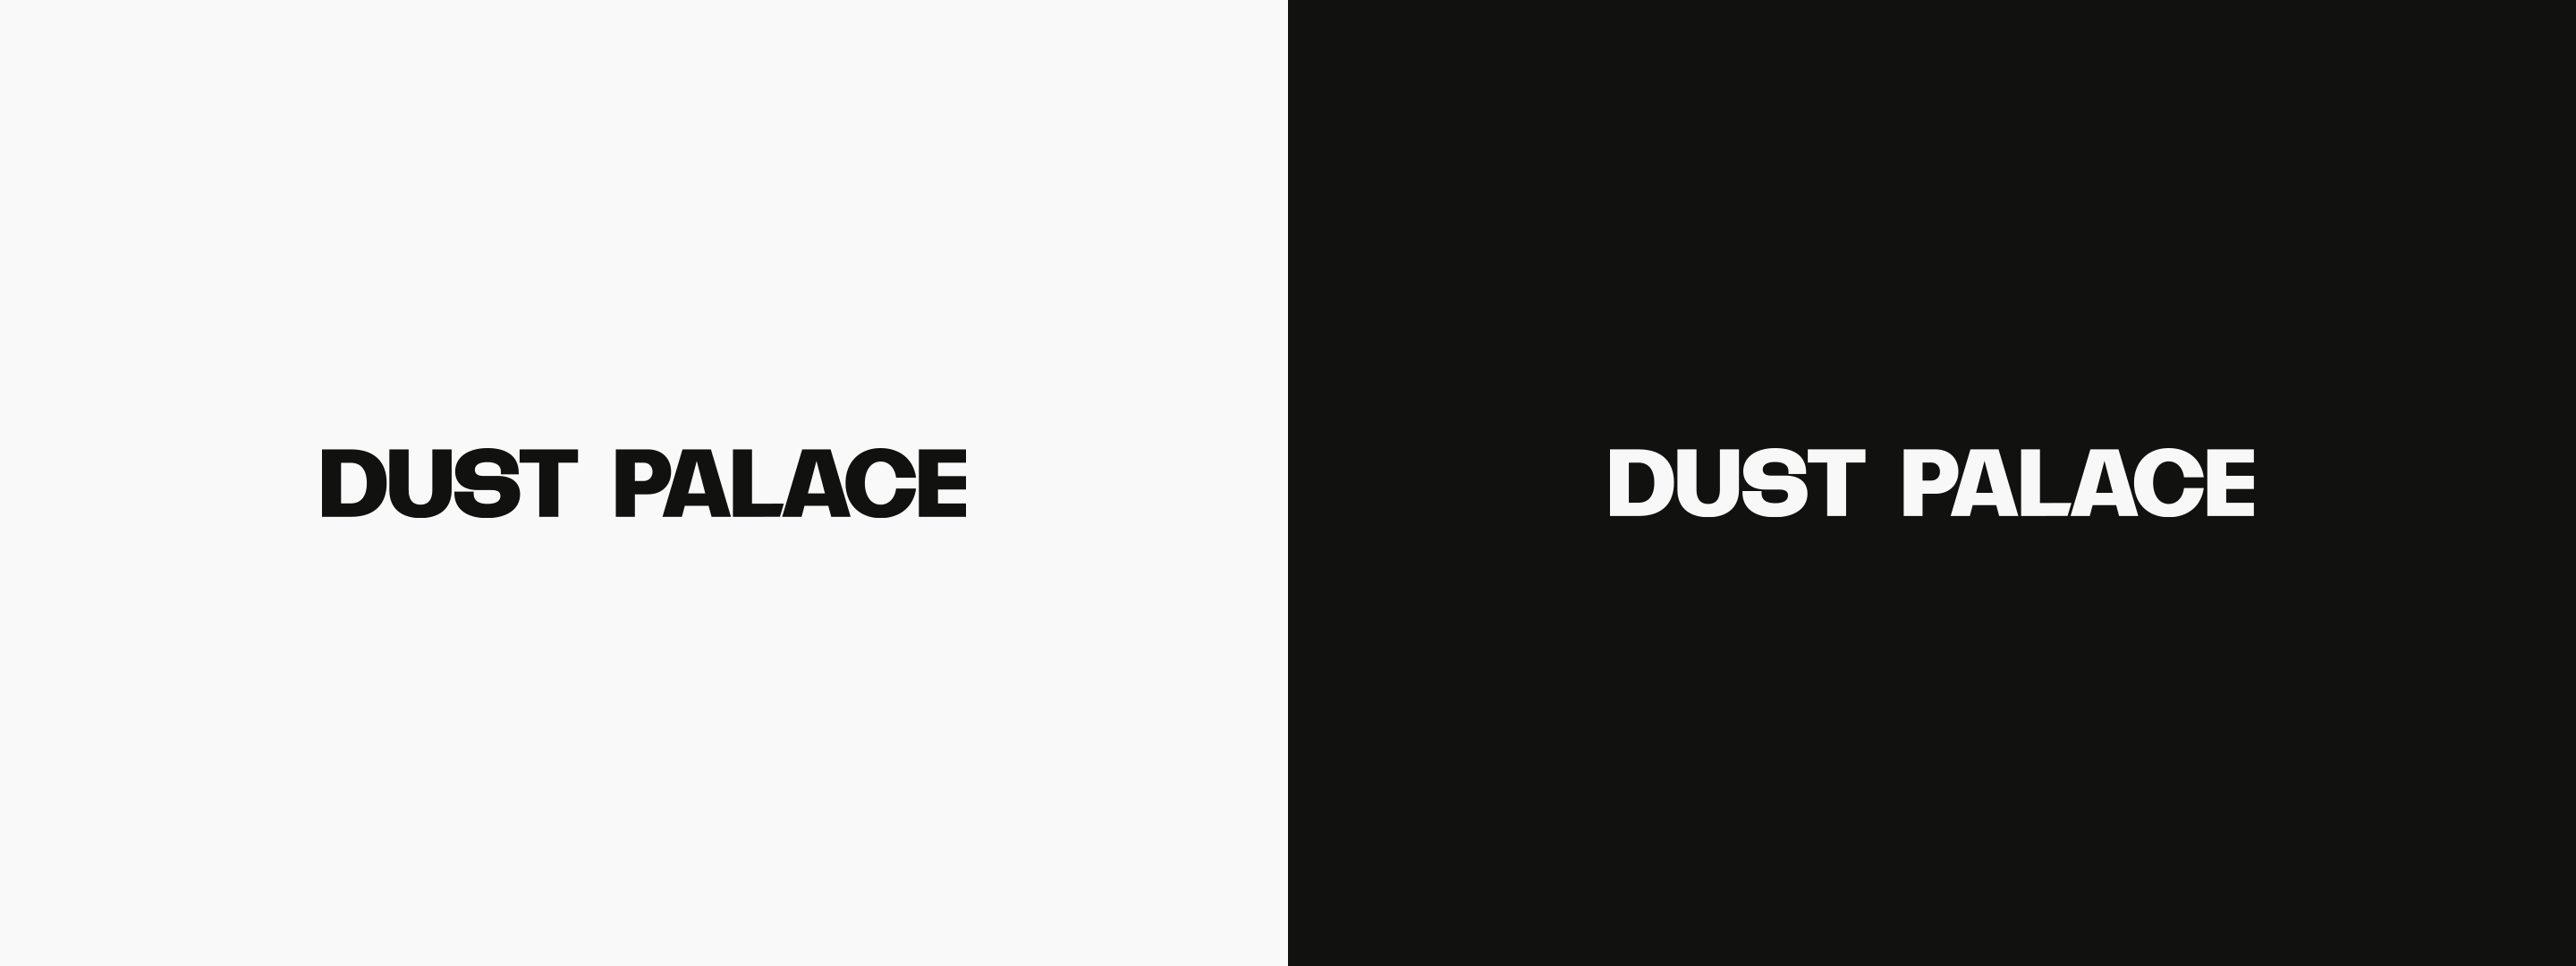 Dust Palace wordmark